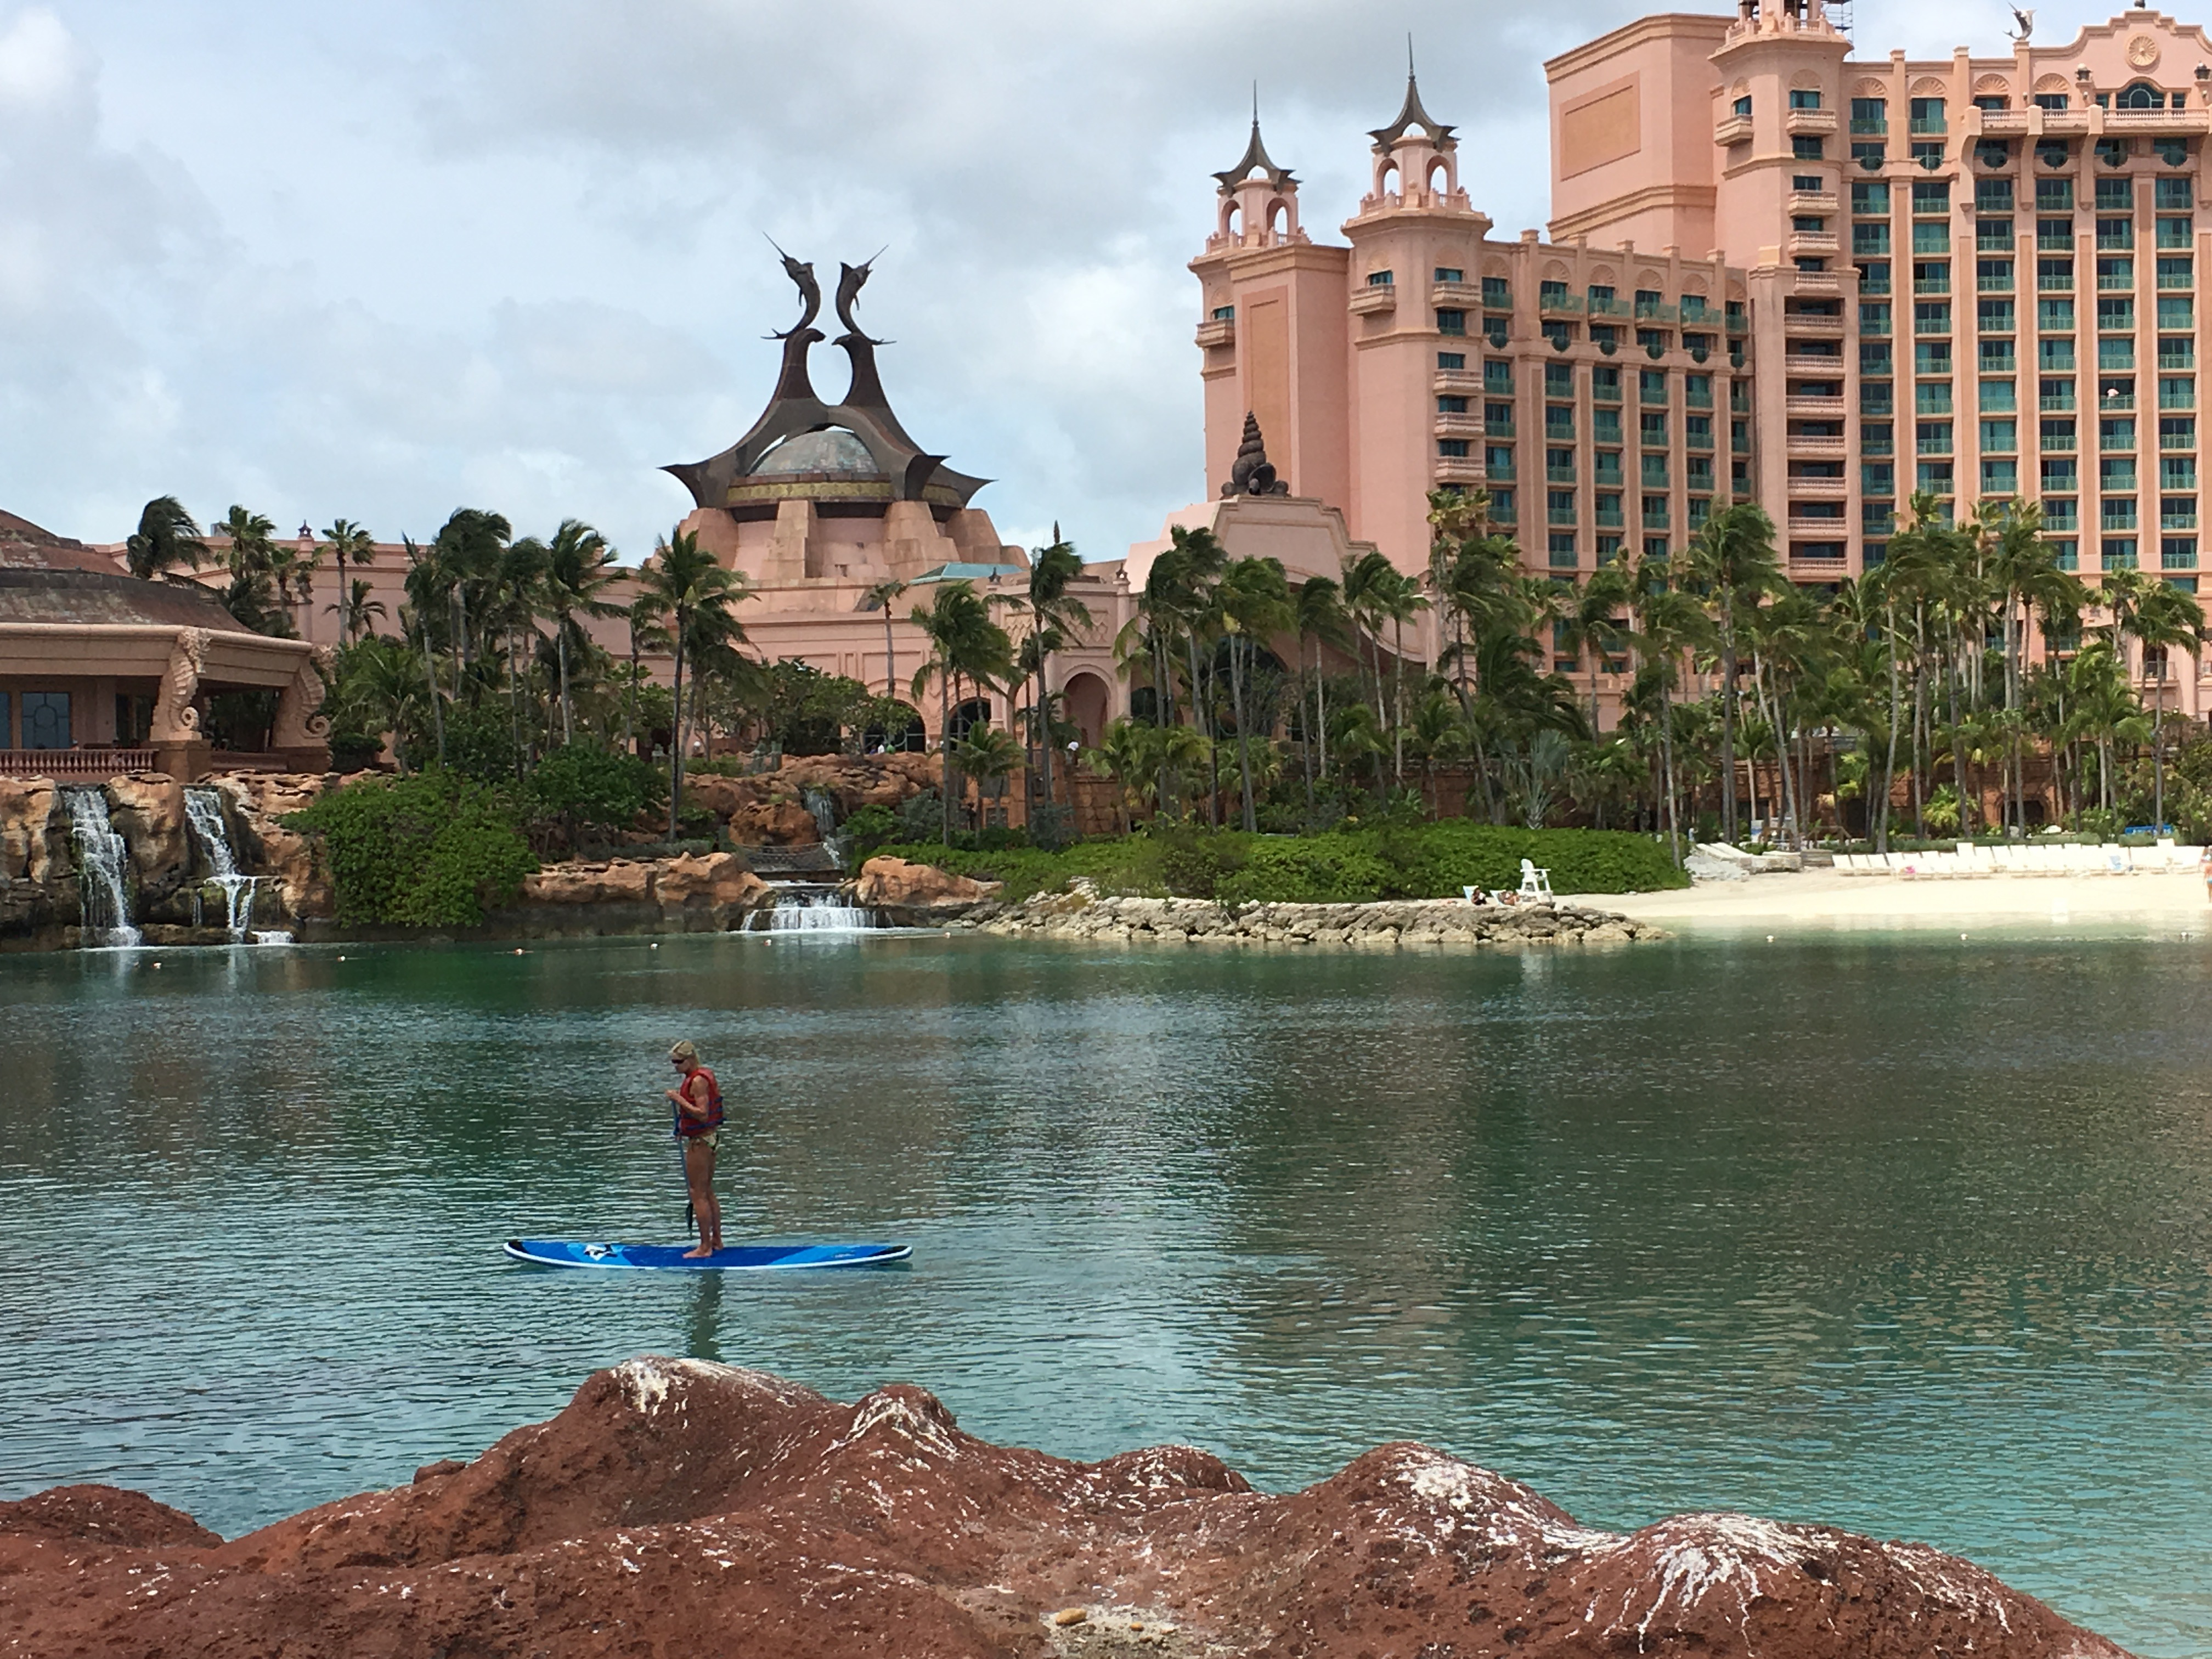 Trying standup paddleboarding in the lagoon at atlantis